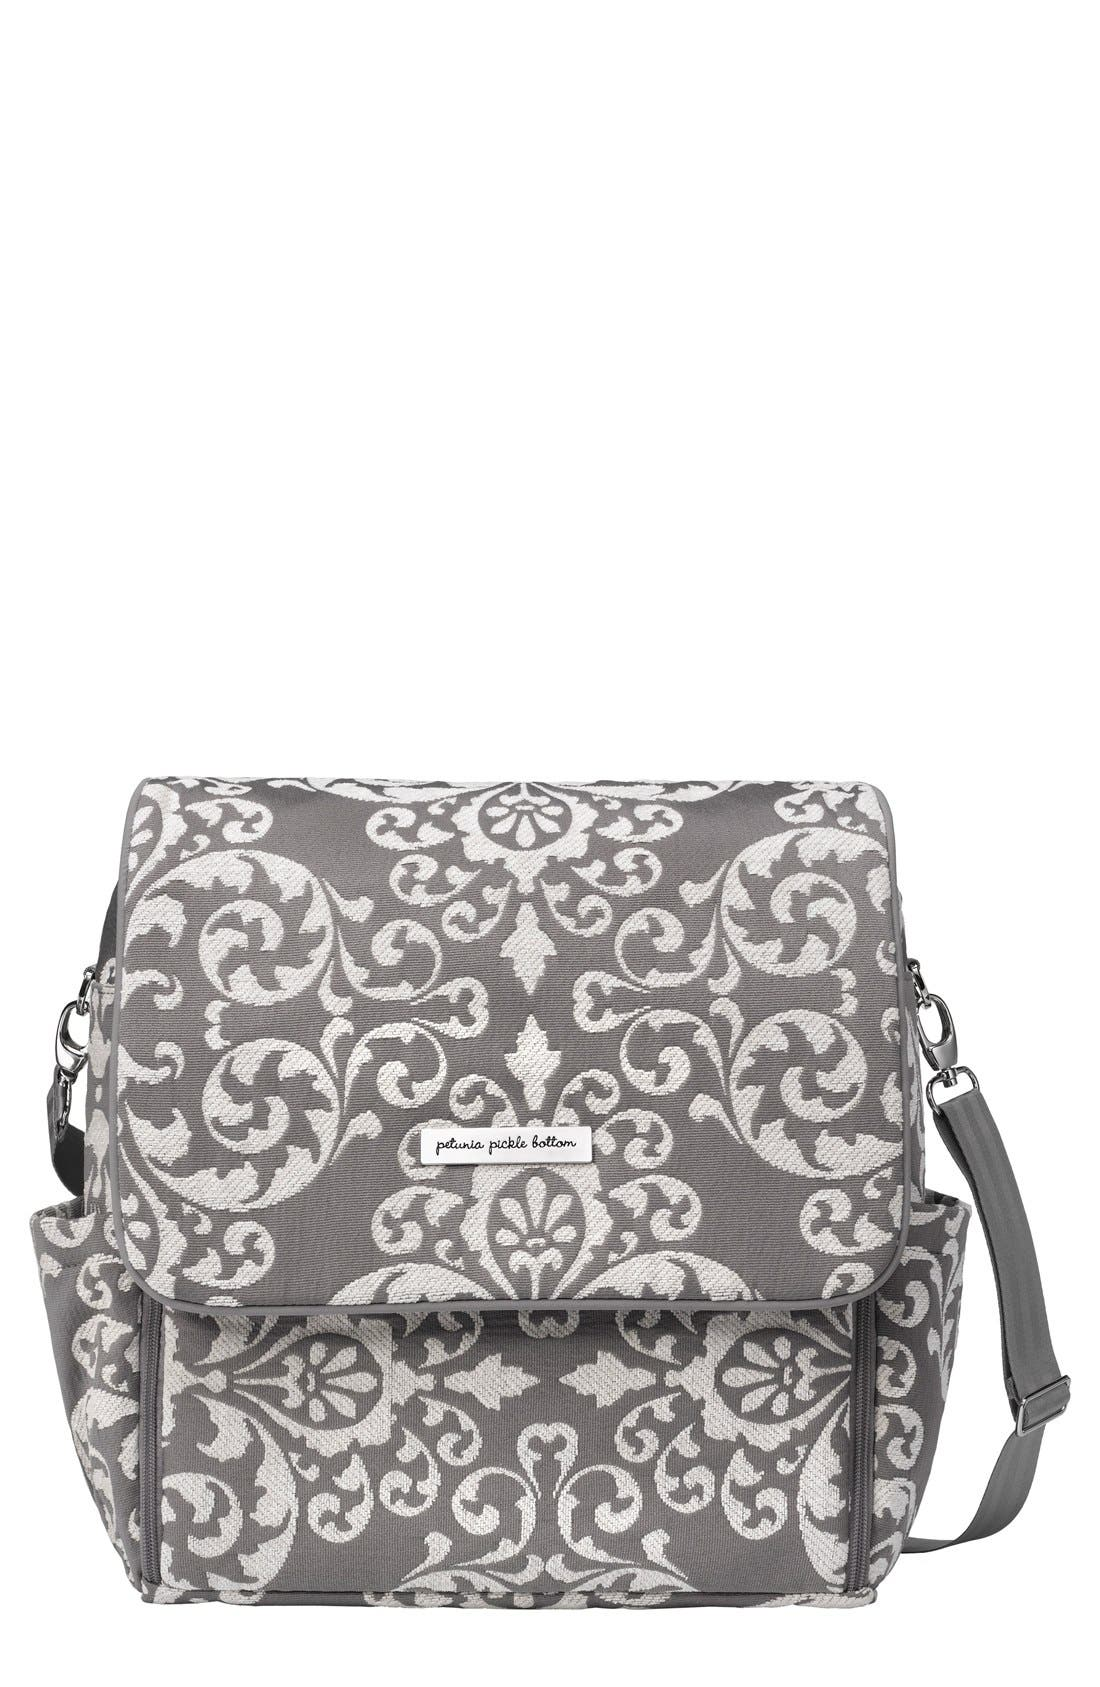 Main Image - Petunia Pickle Bottom 'Boxy' Chenille Convertible Diaper Backpack